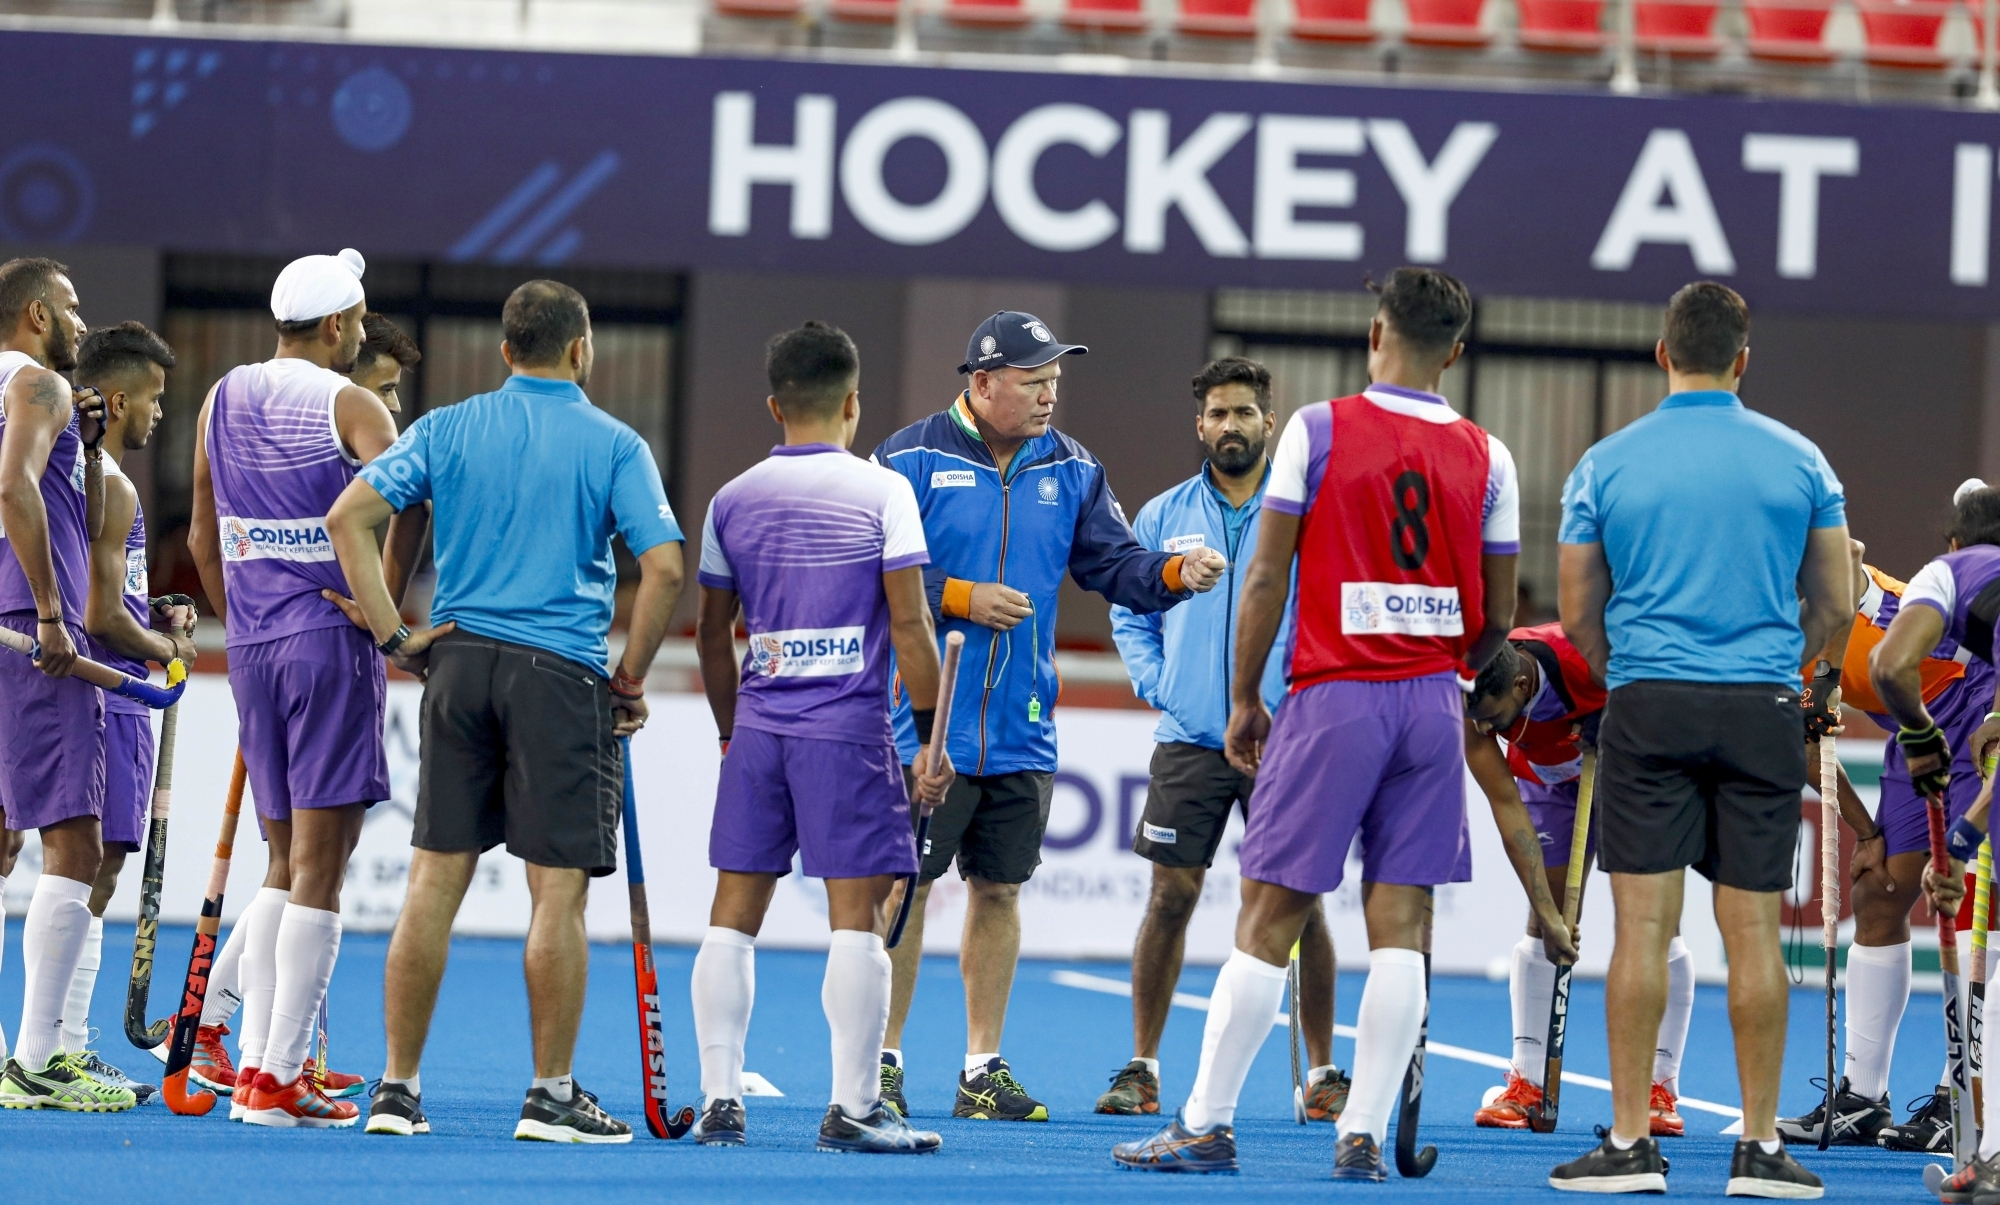 Hockey team ready to compete on the world stage, says Reid